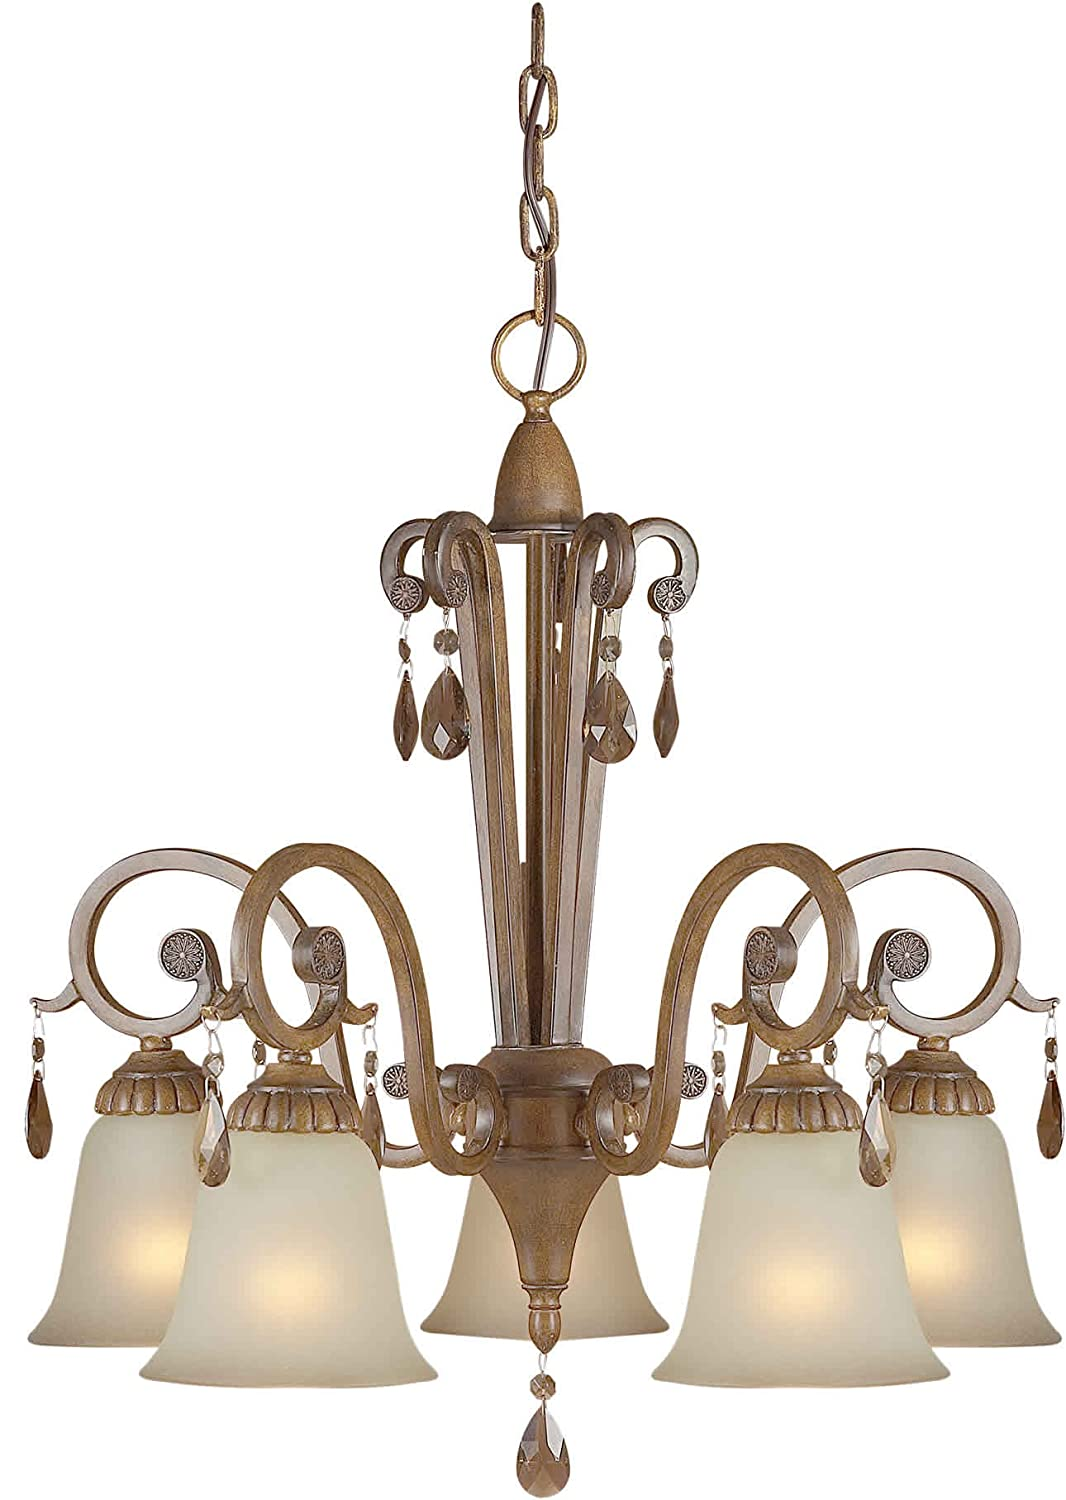 Forte Lighting 2390-05-41 Chandelier with Shaded Umber Glass Shades Rustic Sienna 22.5 x 23 x 22.5